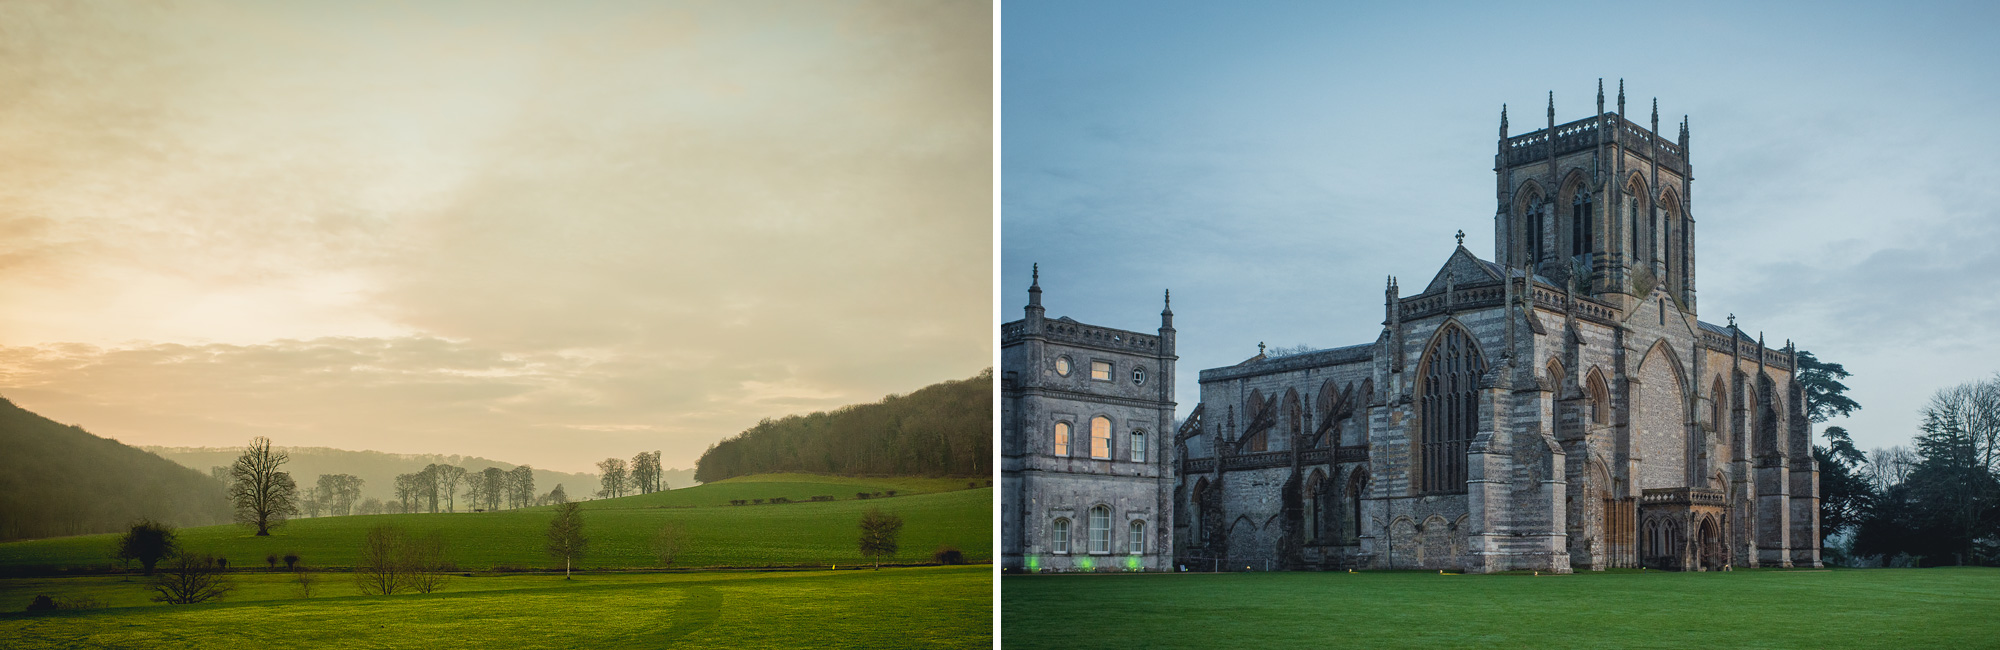 wedding-photographer-milton-abbey-landscape.jpg